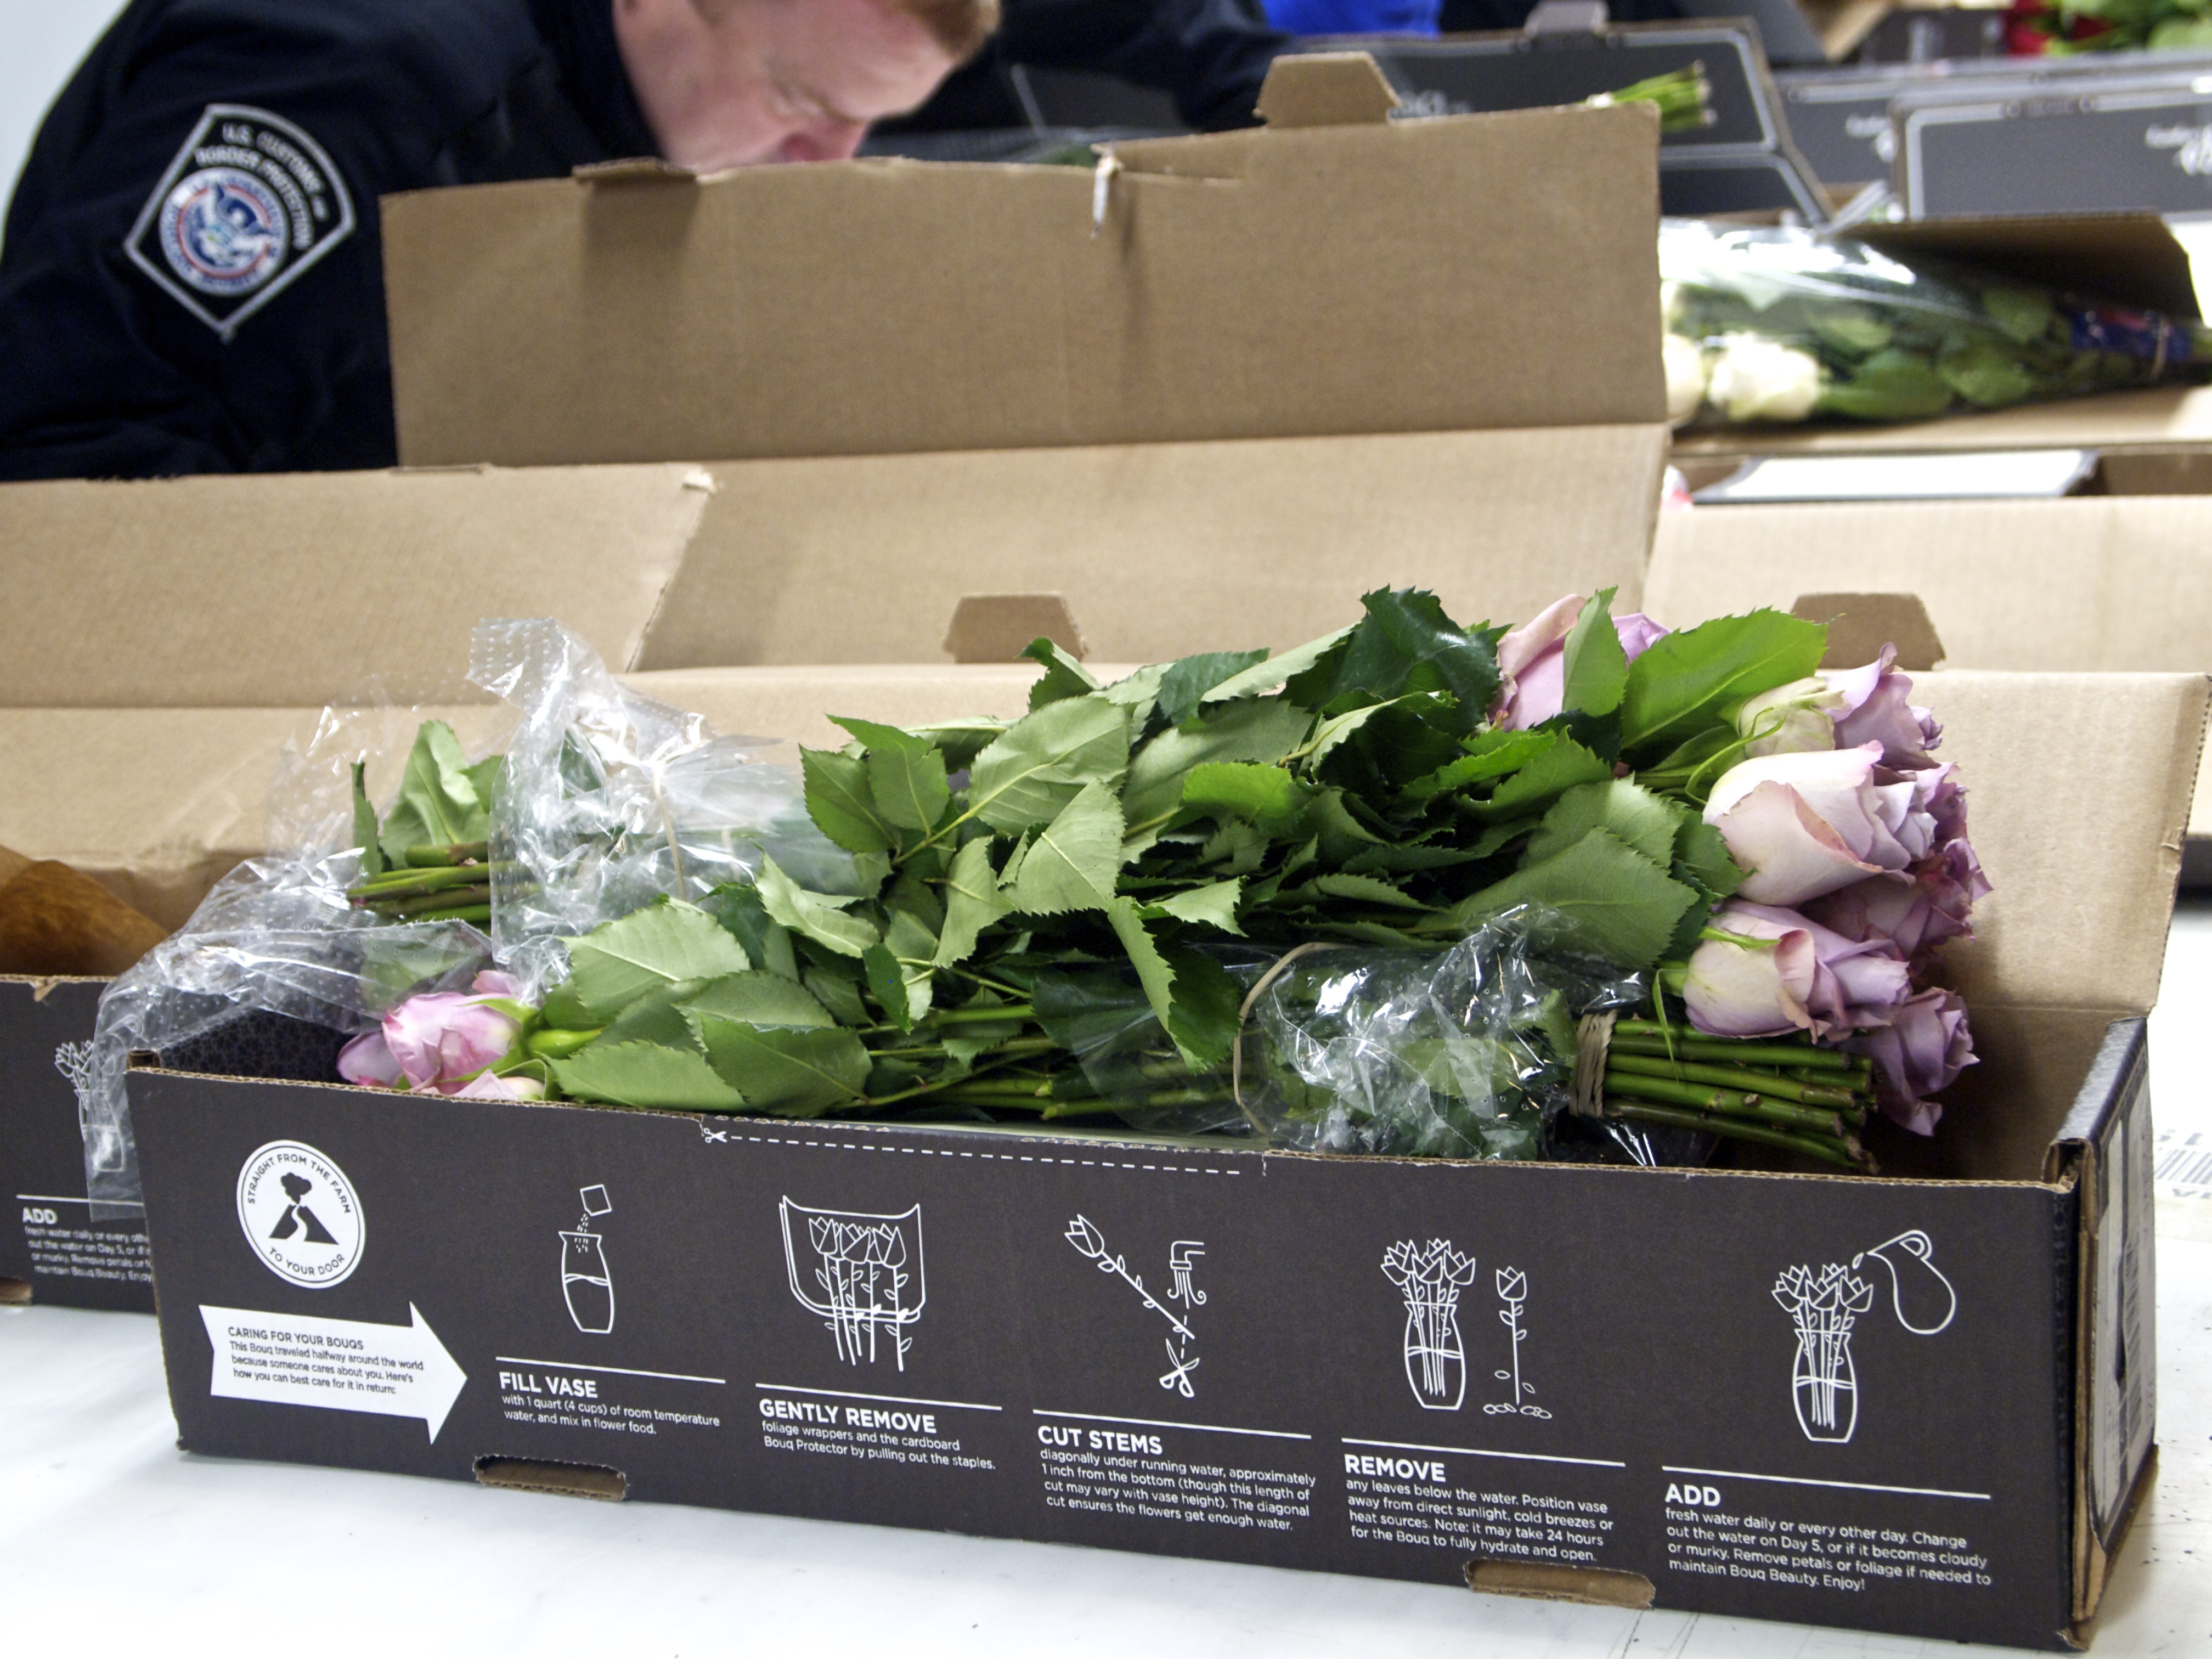 Us customs and border protection inspect flower shipments before us customs and border protection inspect flower shipments before valentines day wlrn mightylinksfo